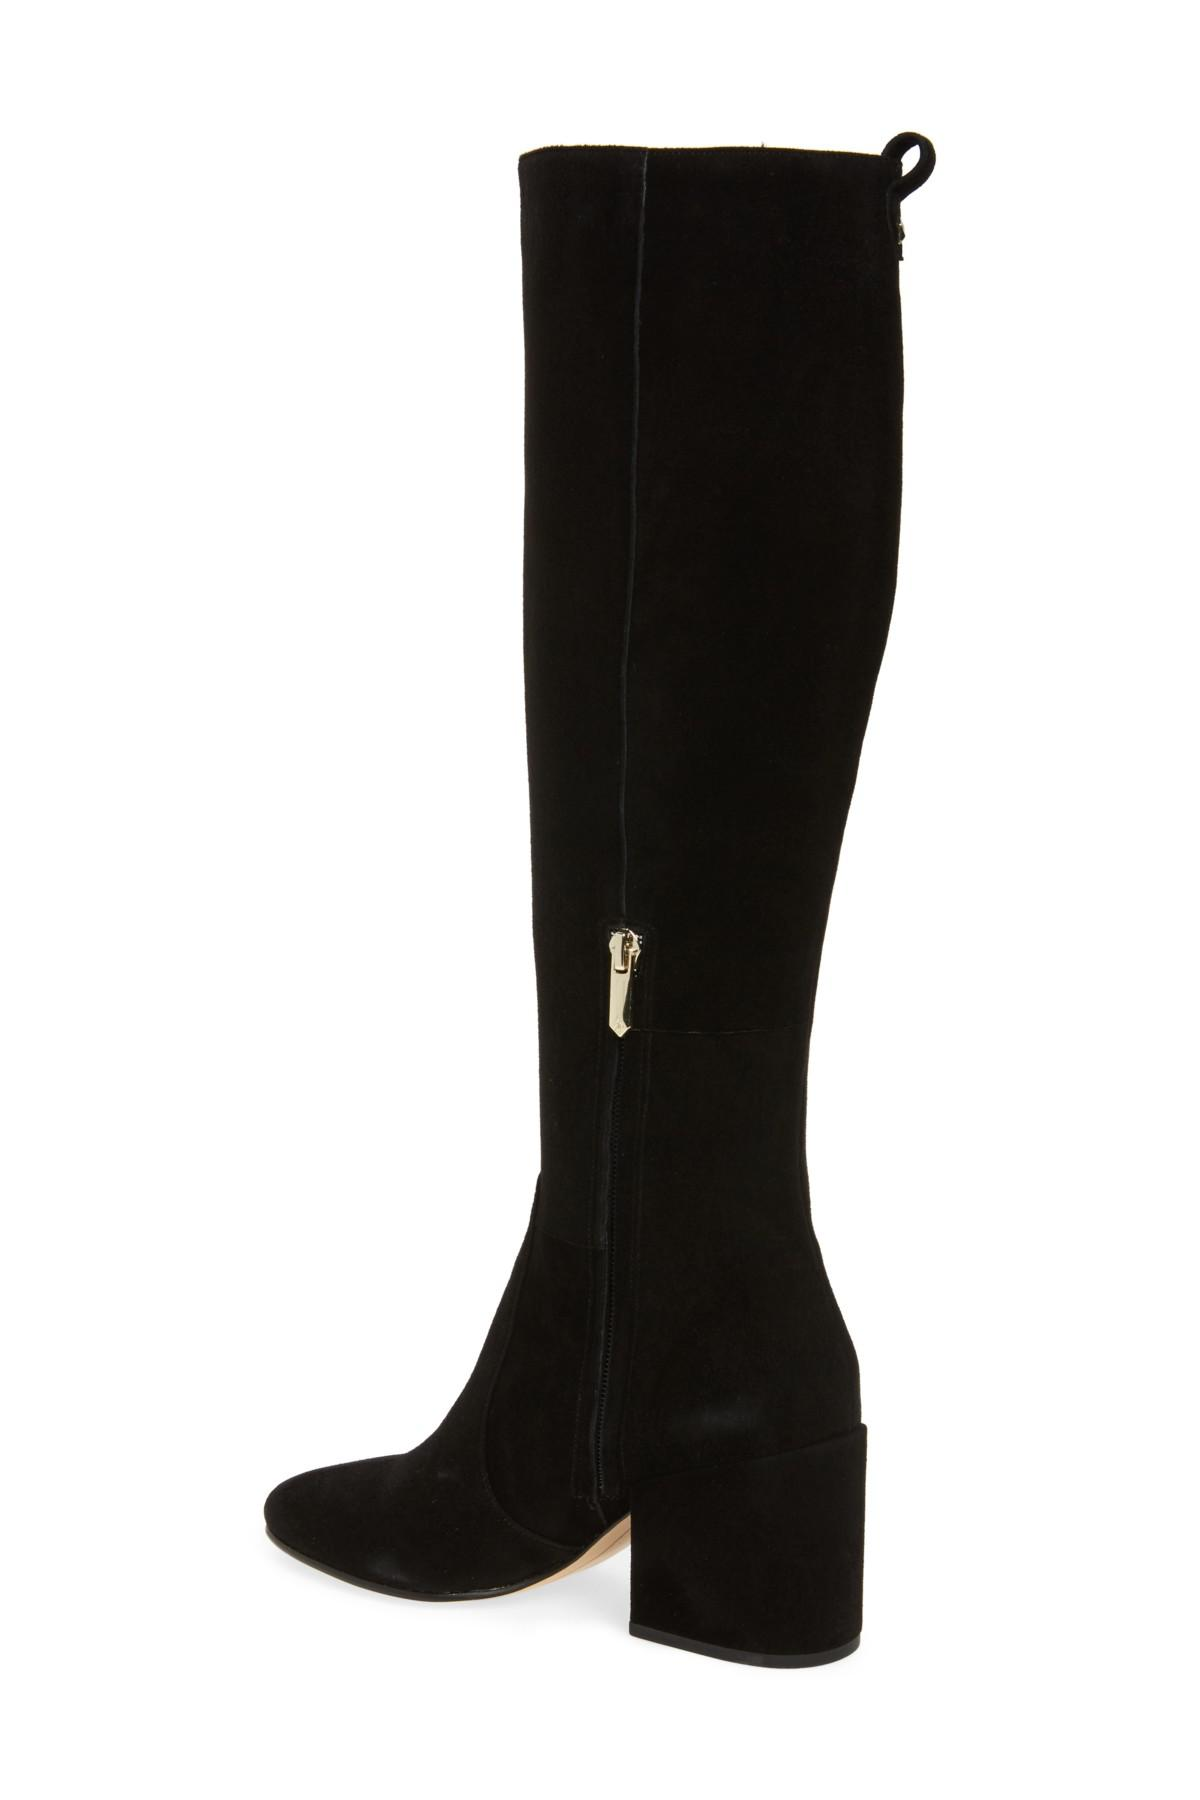 30ae57361 Lyst - Sam Edelman Thora Knee High Boot (women) in Black